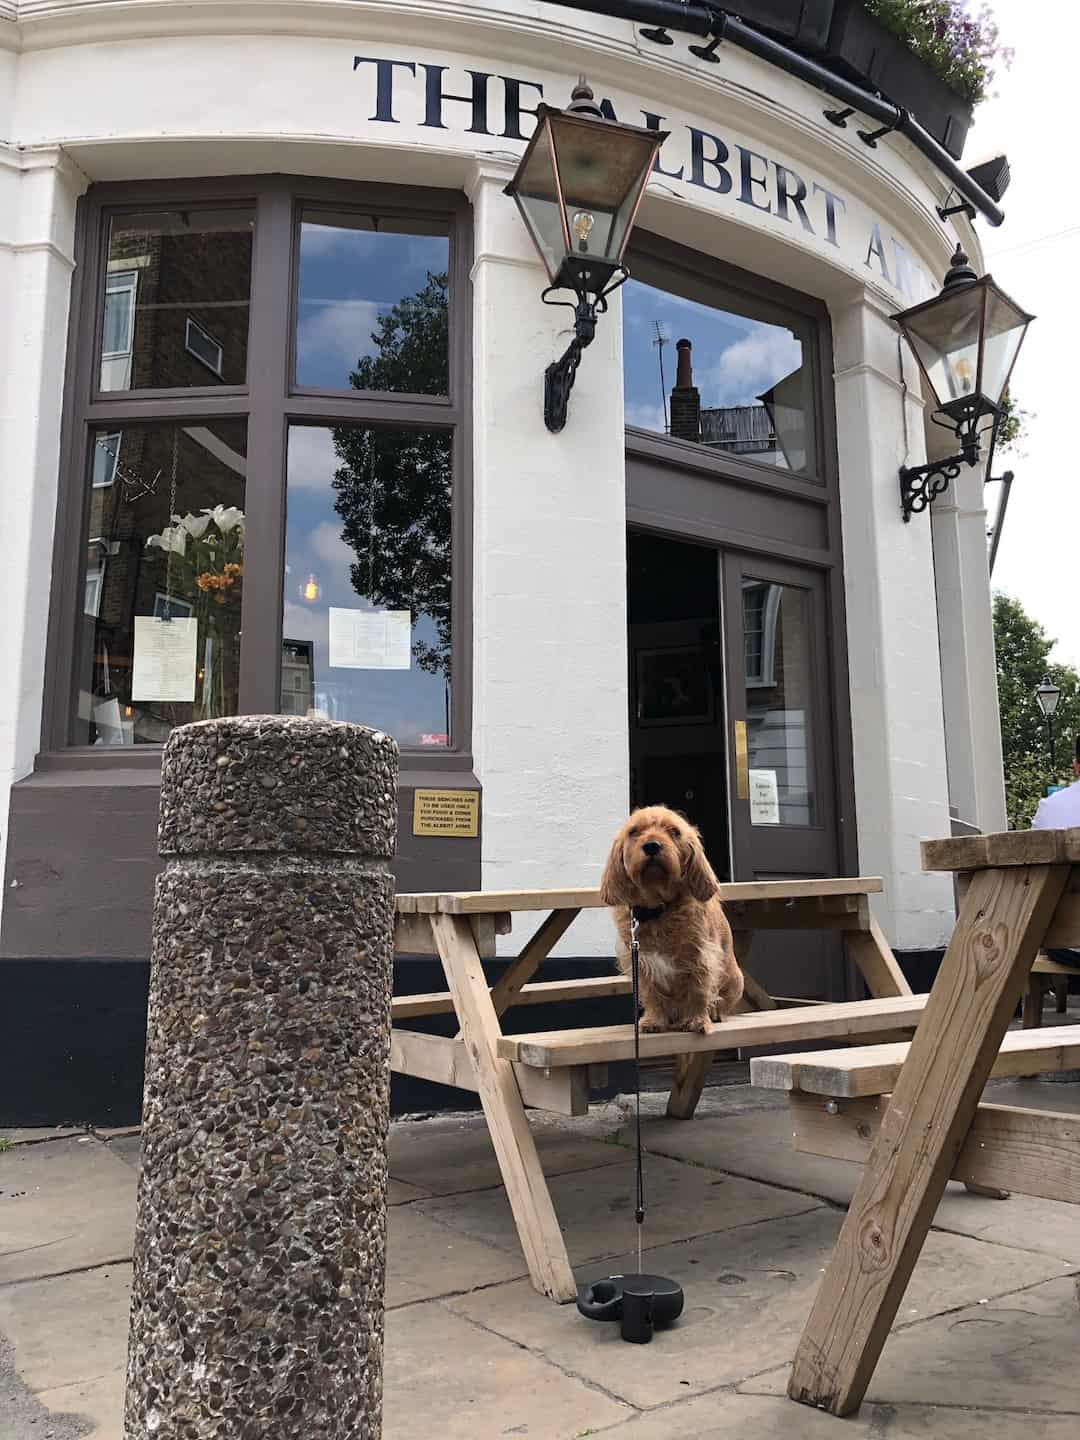 My Dog Friendly London By Amber - Dog Friendly Elephant & Castle - Albert Arms 3